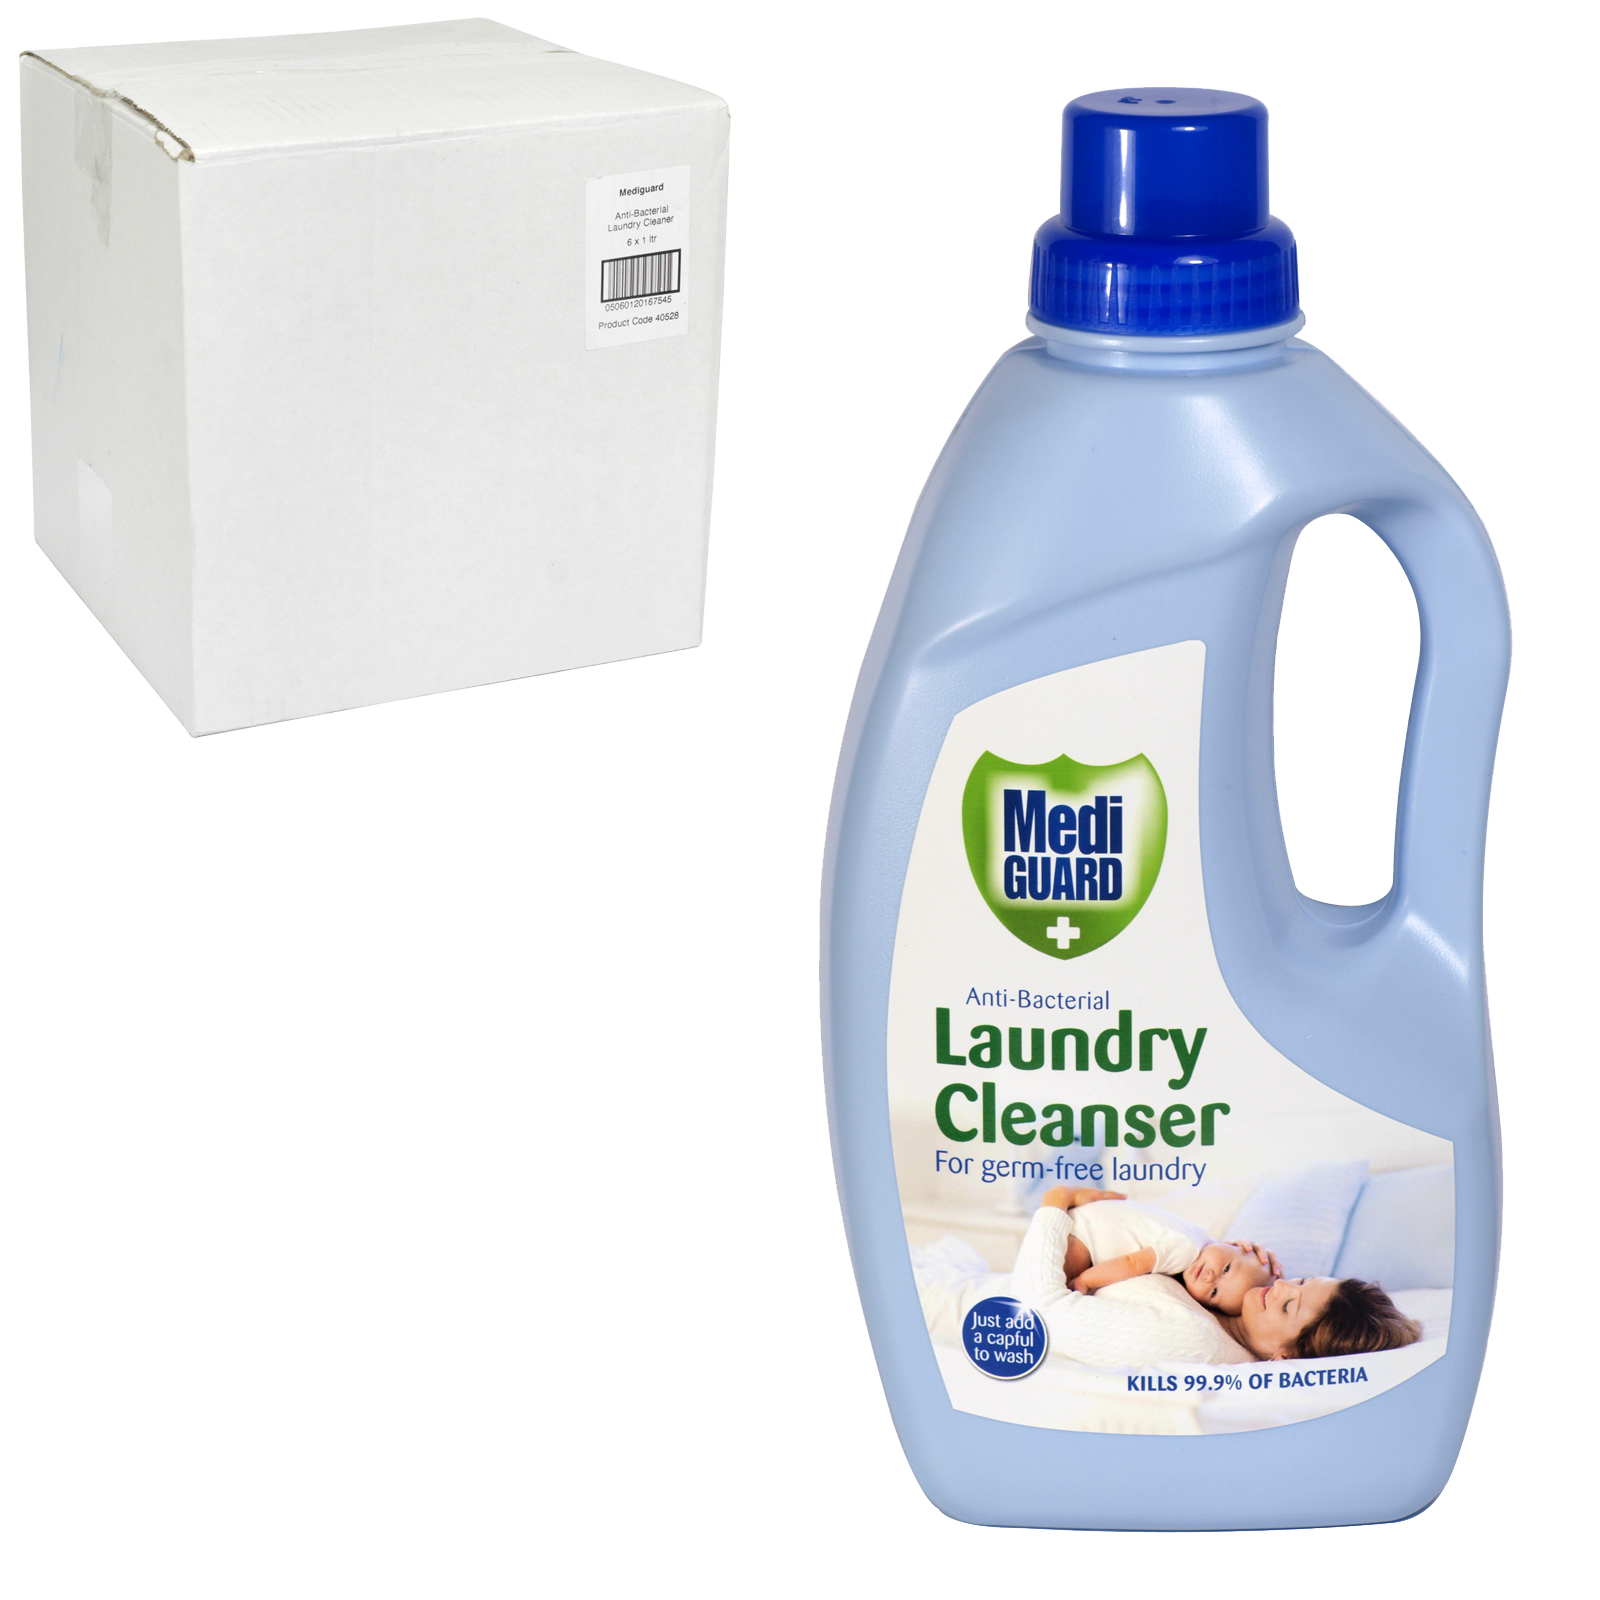 MEDIGUARD ANTI-BACTERIAL LAUNDRY CLEANSER 1L X6